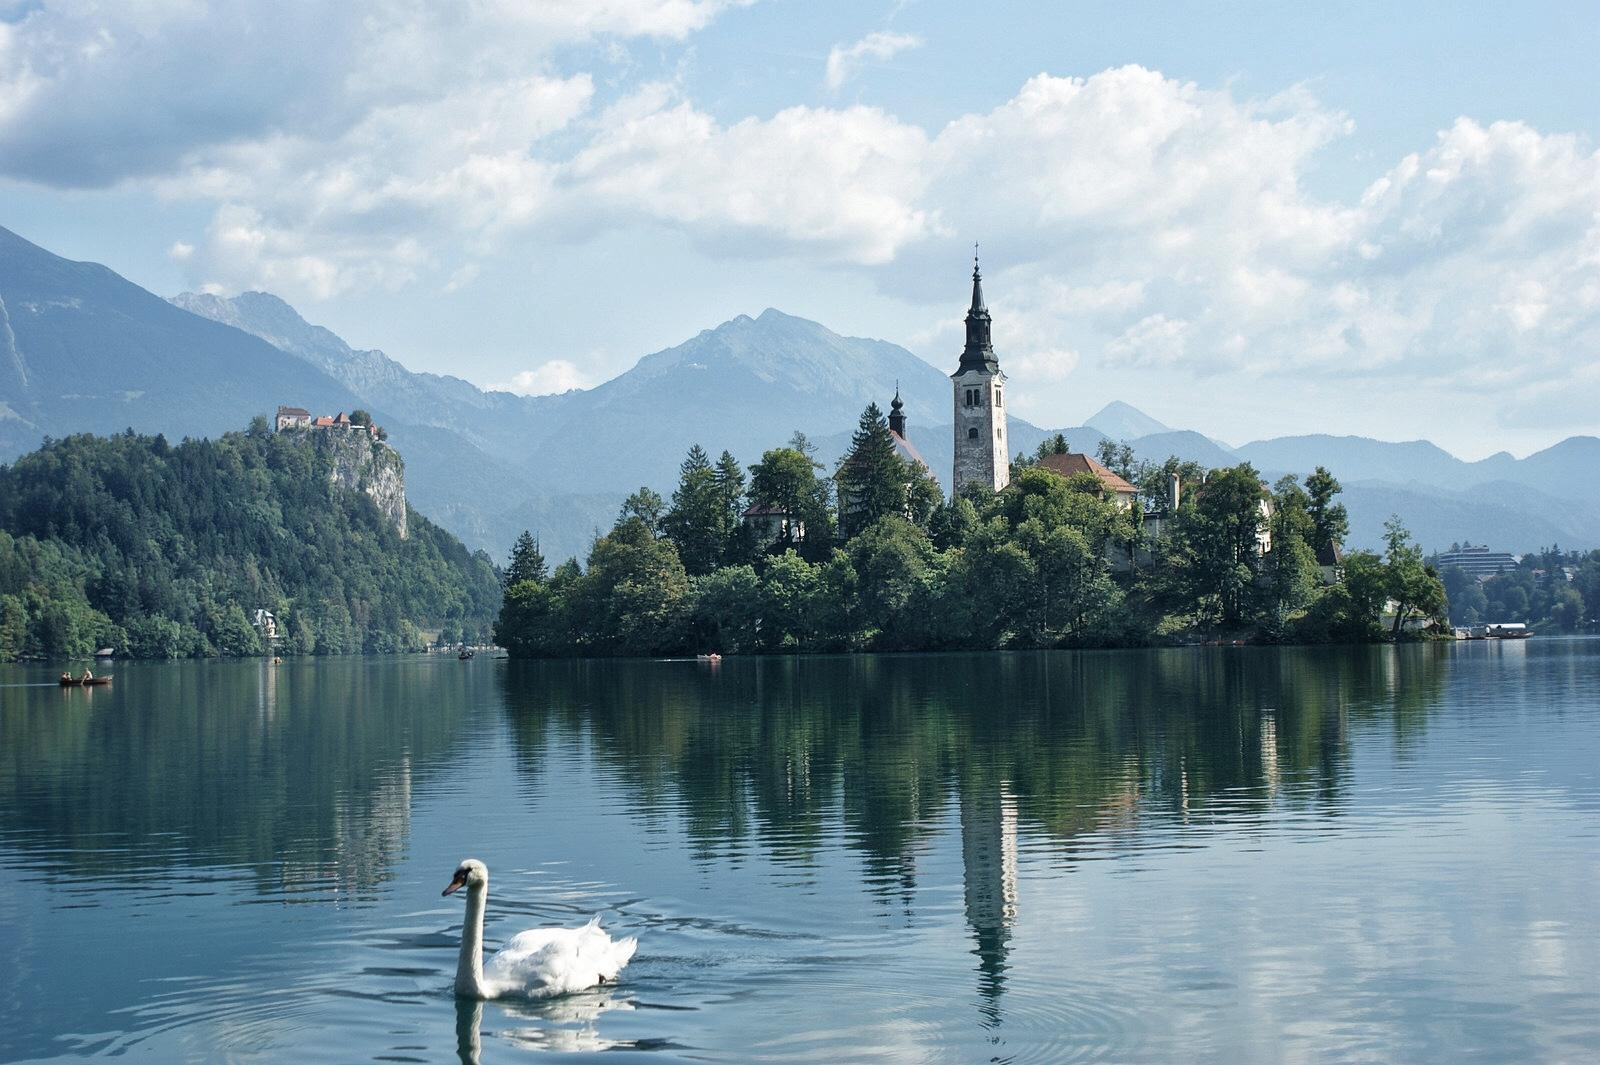 Bled lake Slovenia and the swan